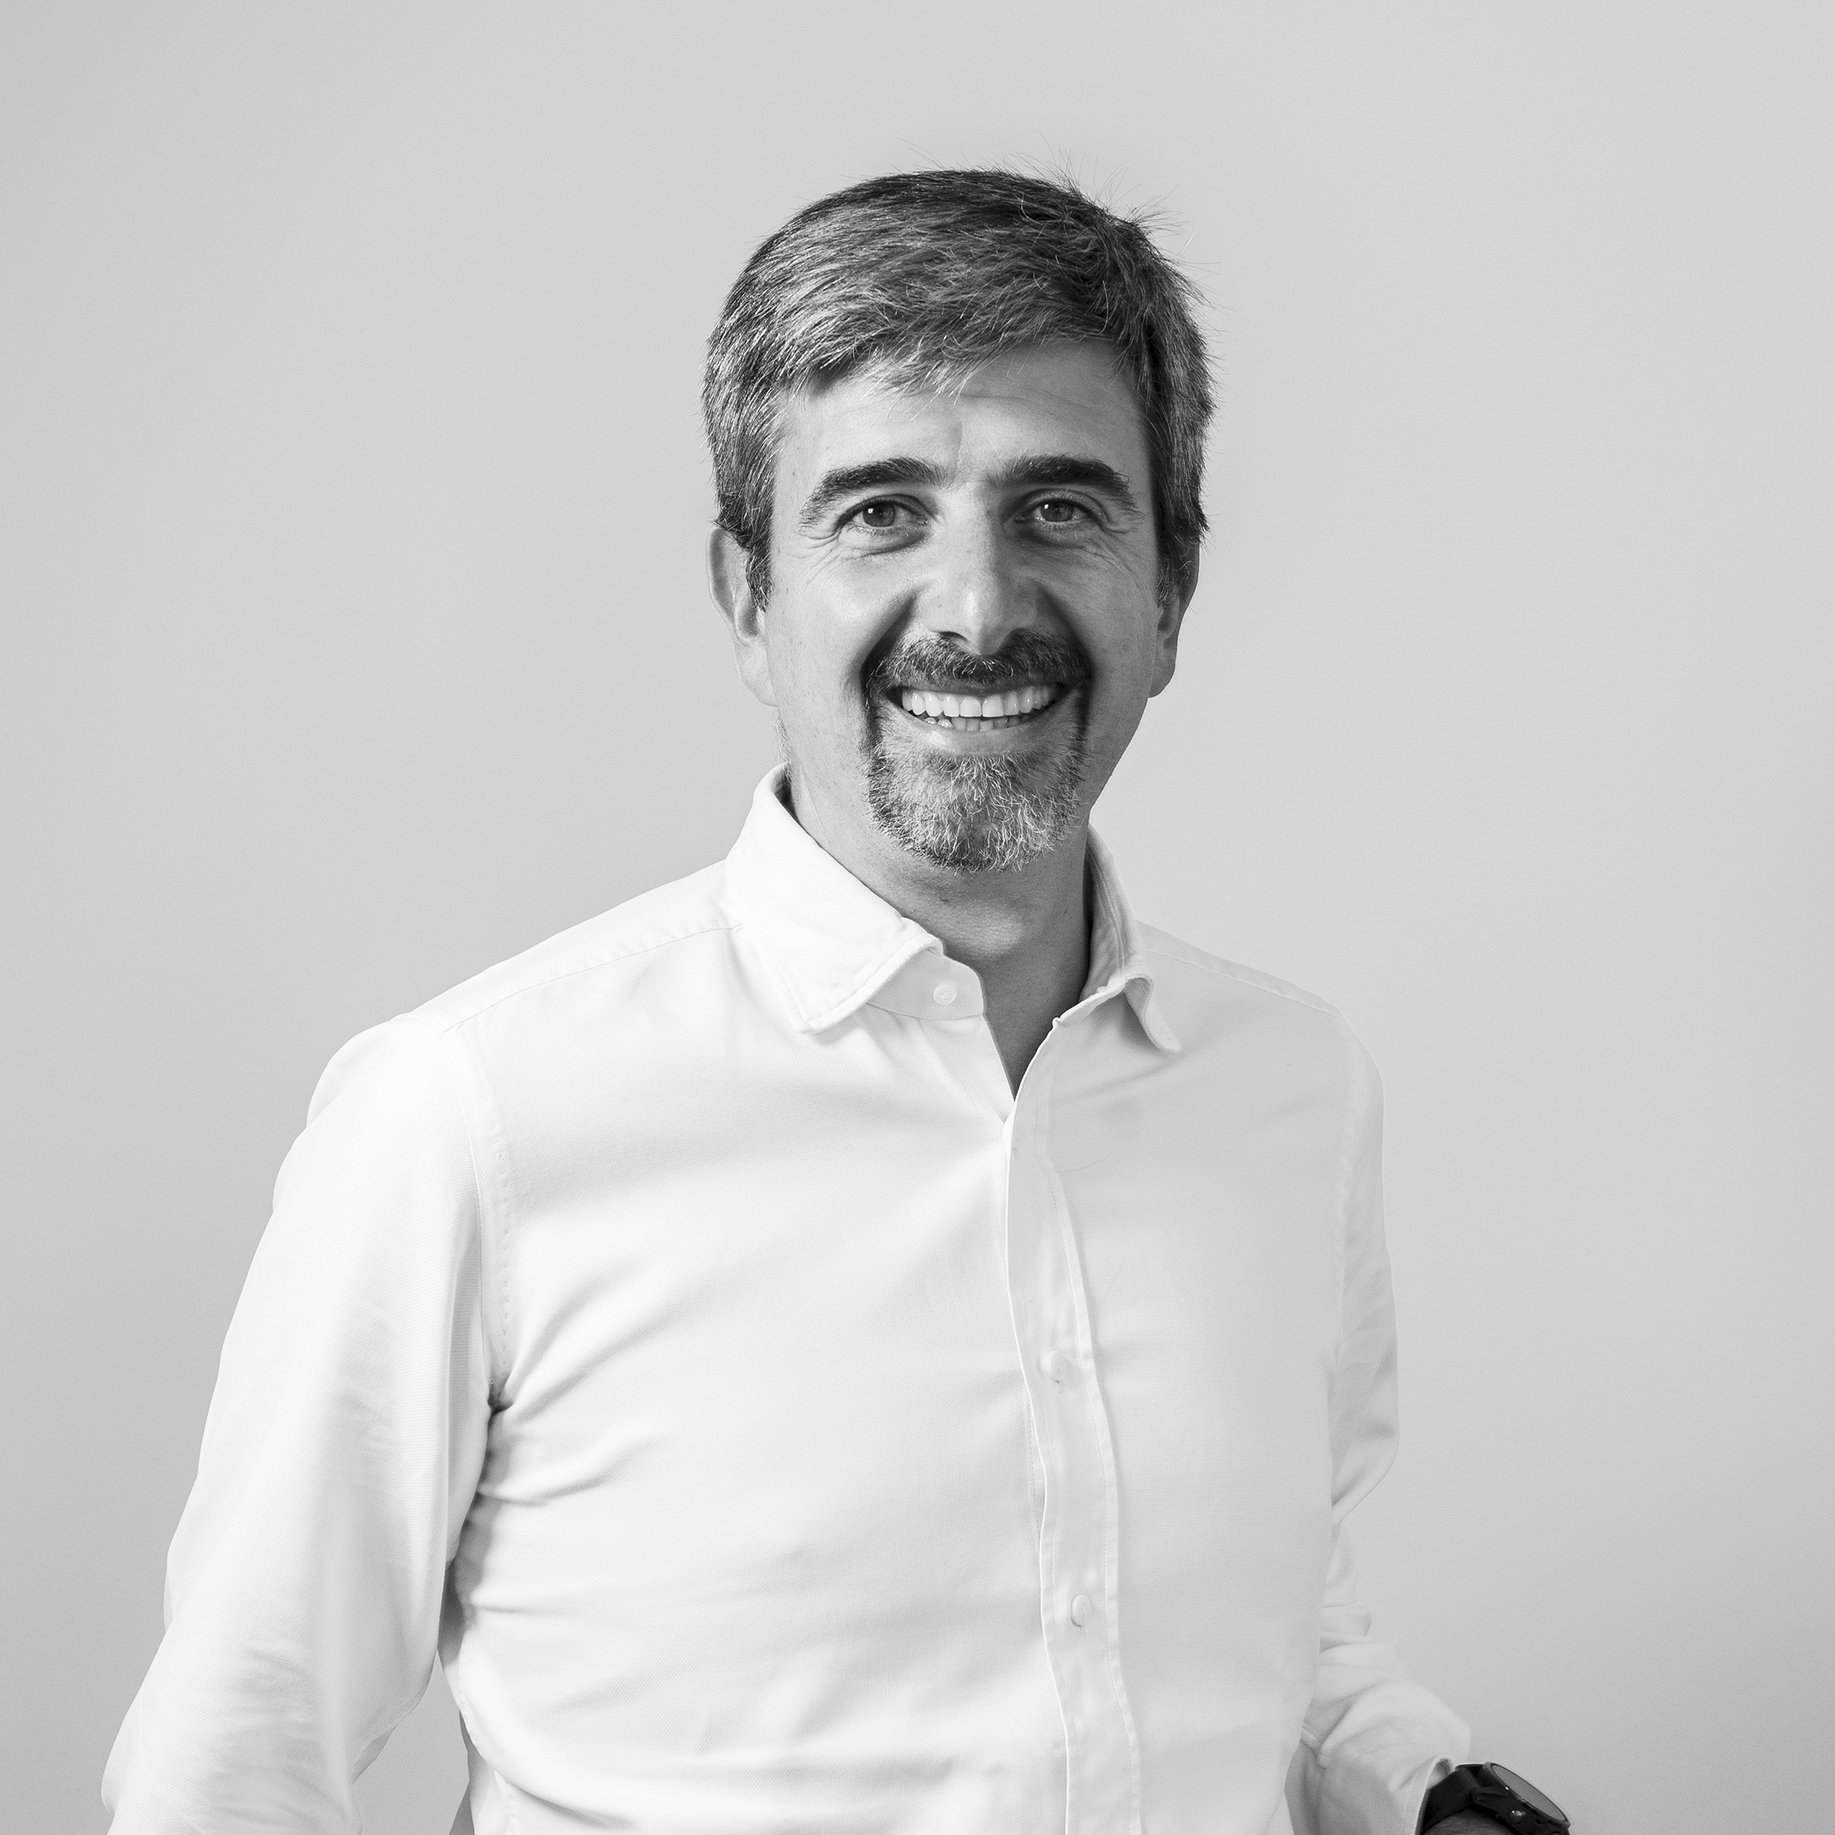 Kaleyra Appoints Mauro Carobene as Chief Business Officer